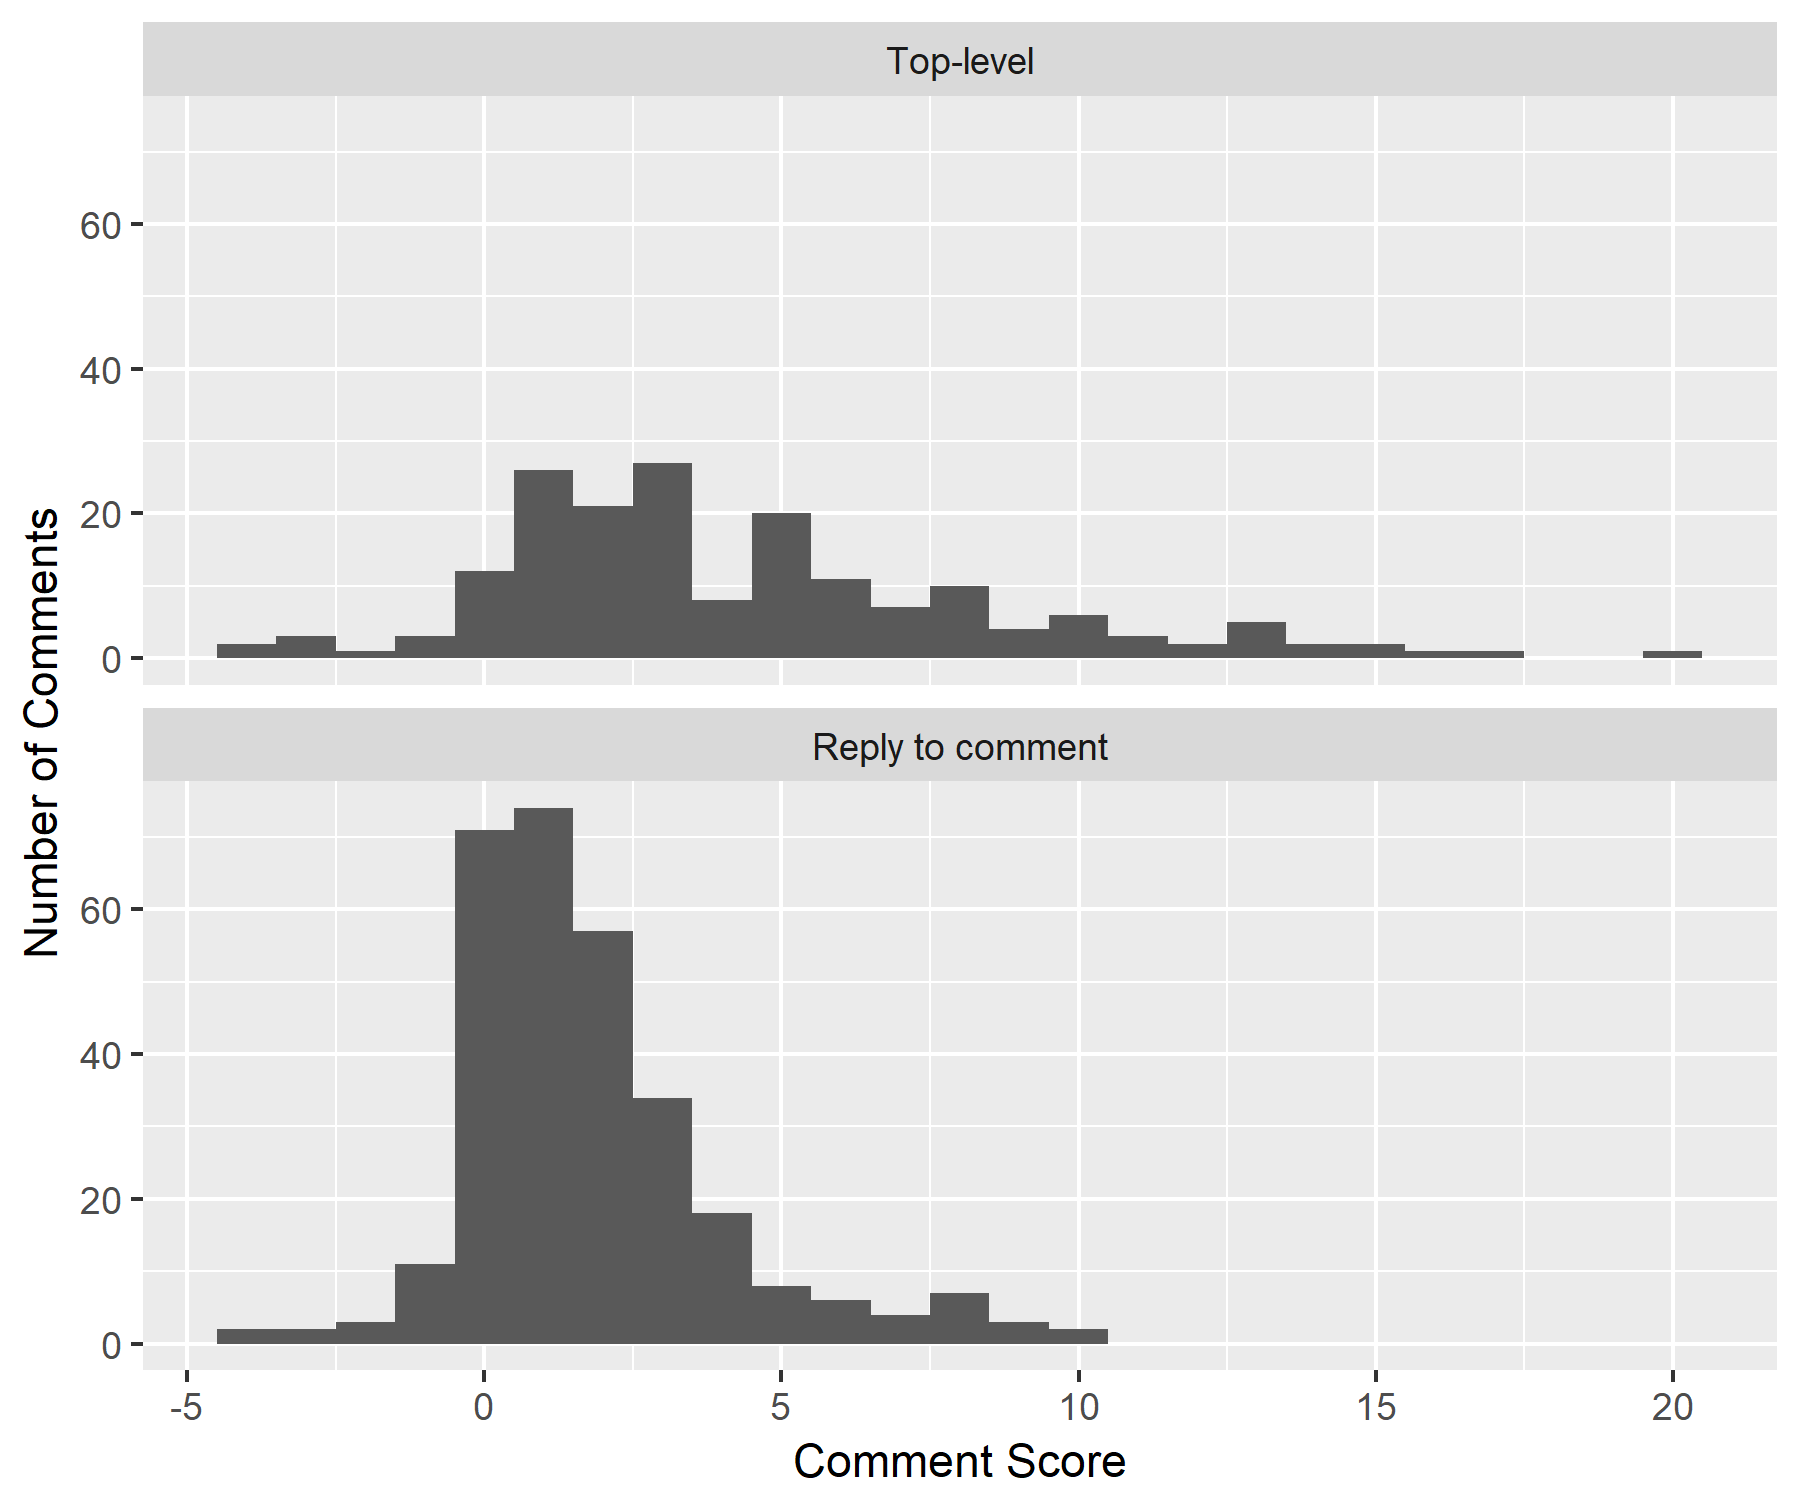 Histogram showing score per comment, separate panes for top-level comments and replies